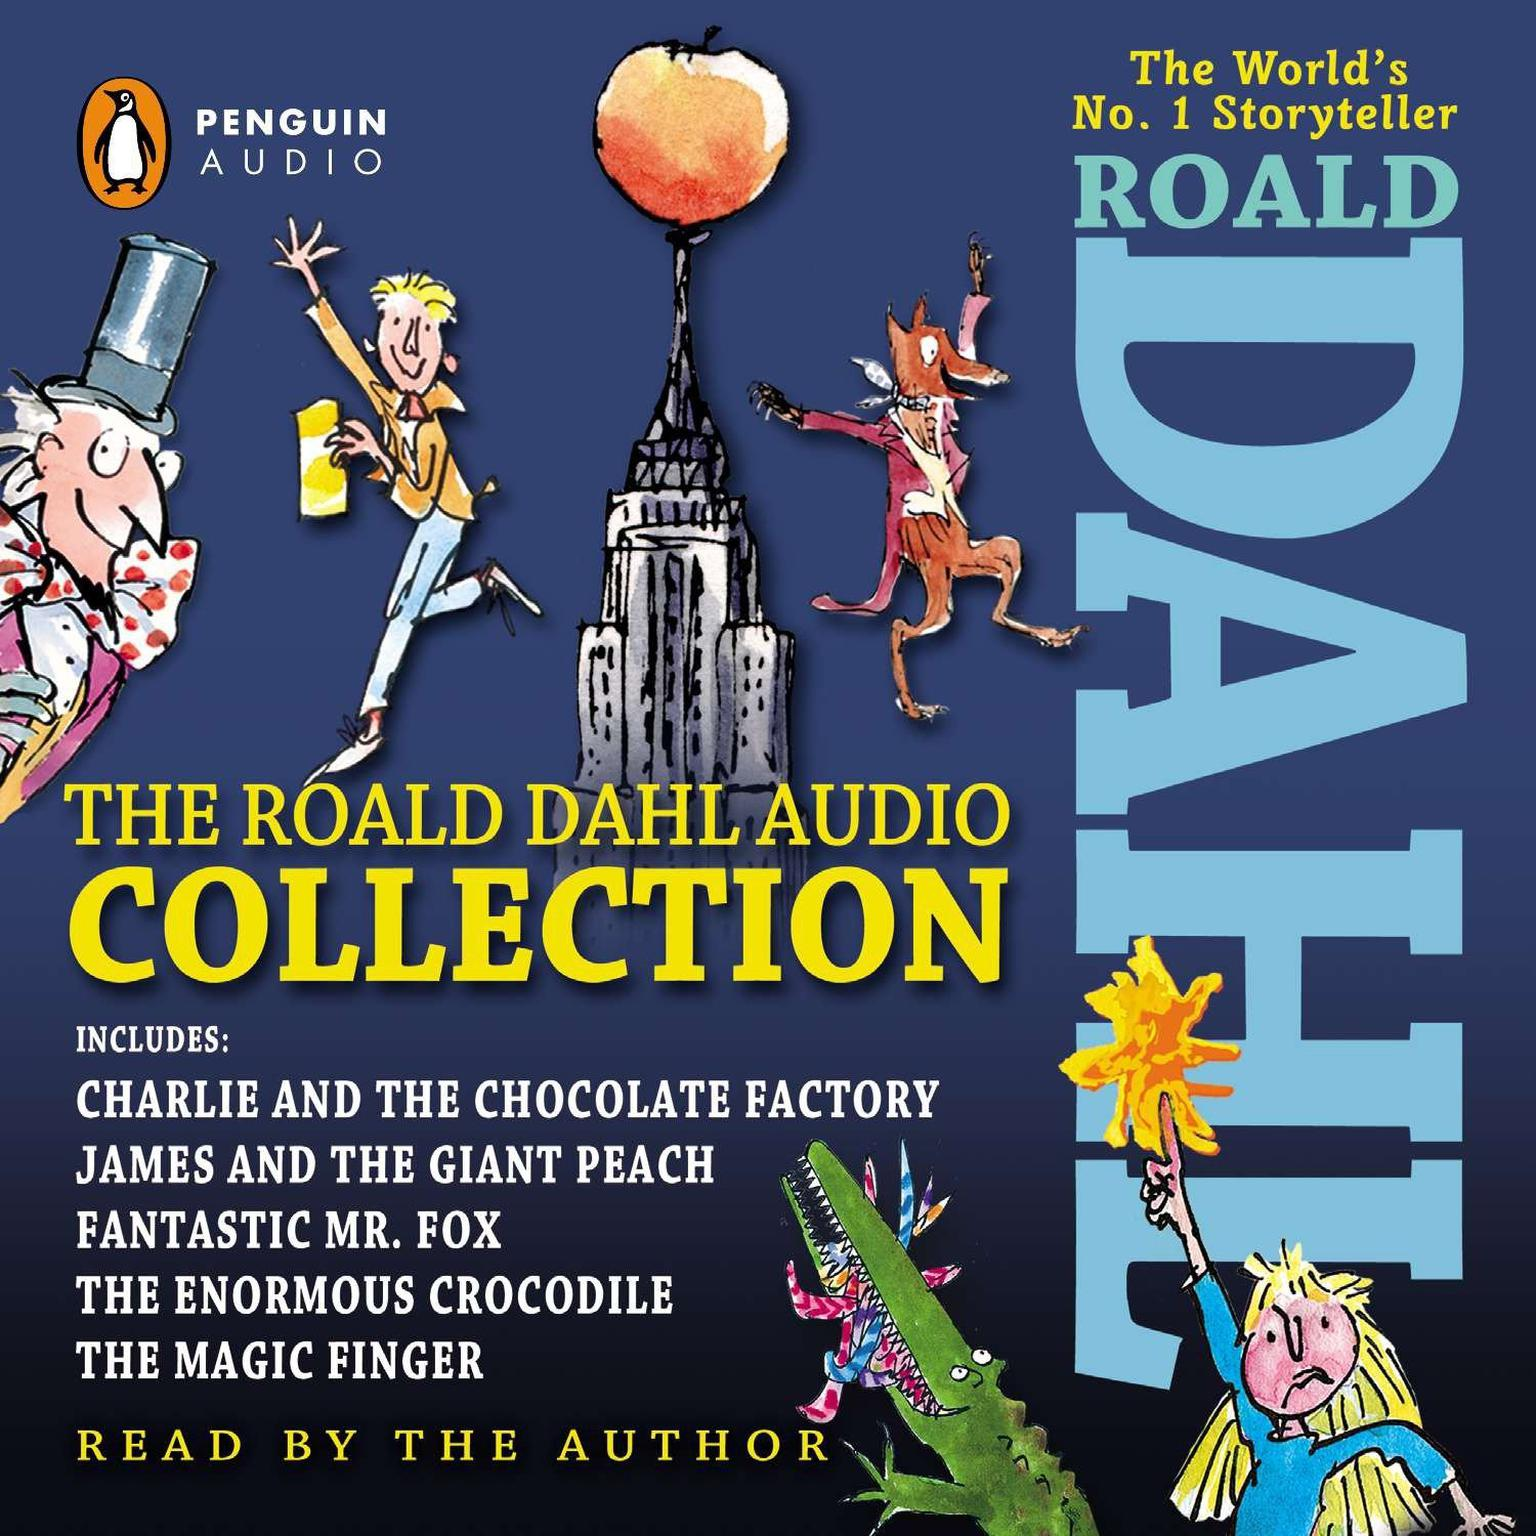 Printable The Roald Dahl Audio Collection: Includes Charlie and the Chocolate Factory, James & the Giant Peach, Fantastic Mr. Fox, The Enormous Crocodile & The Magic Finger Audiobook Cover Art